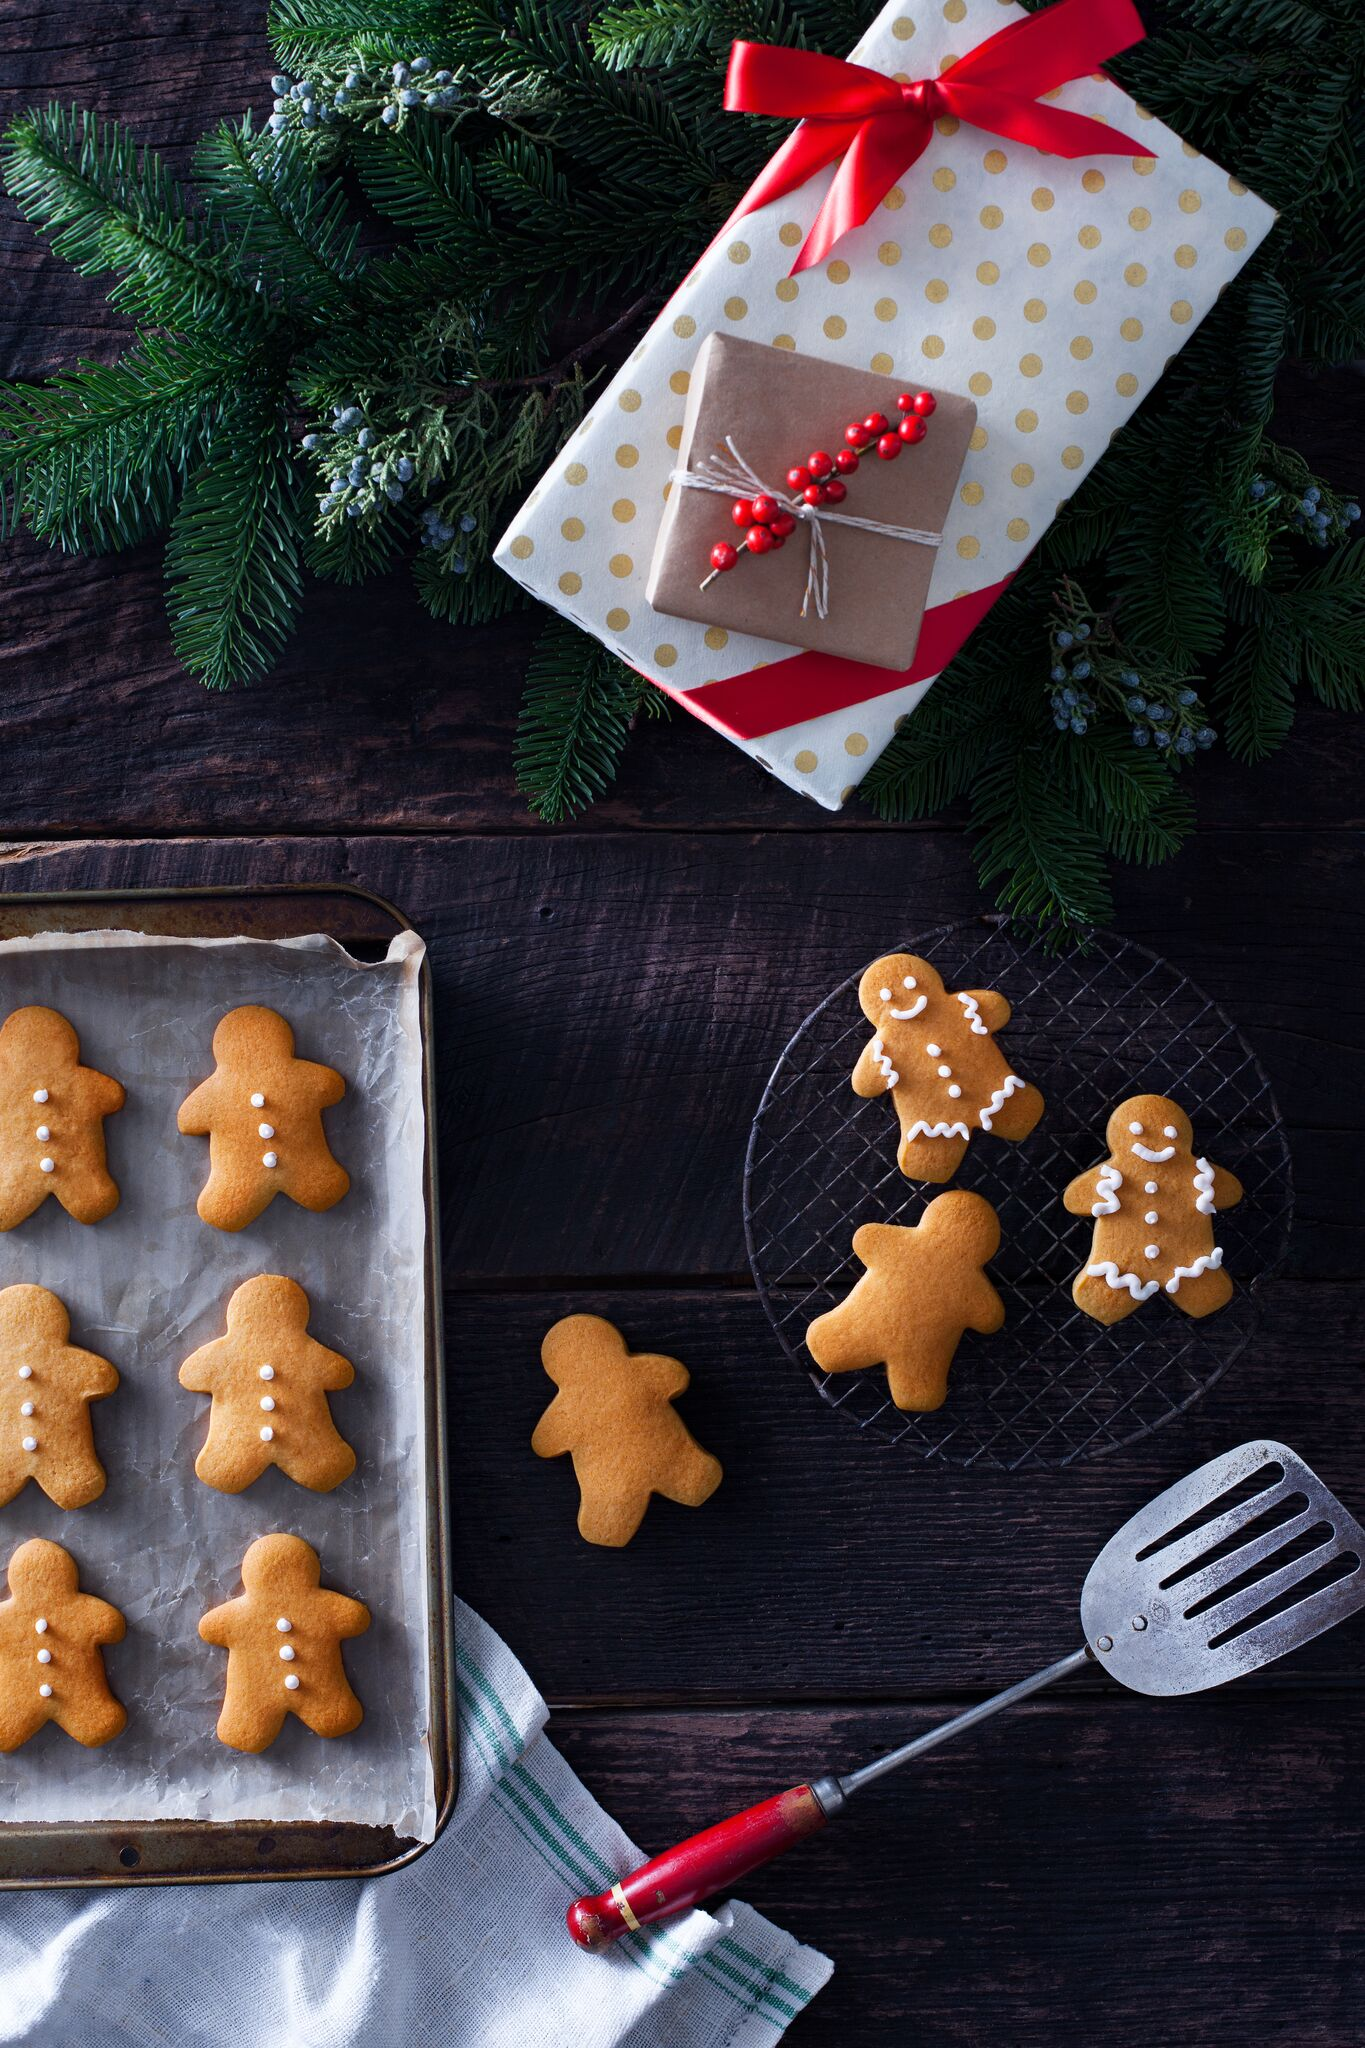 Natalie-Groce-Holiday-Cookies_03_preview.jpeg